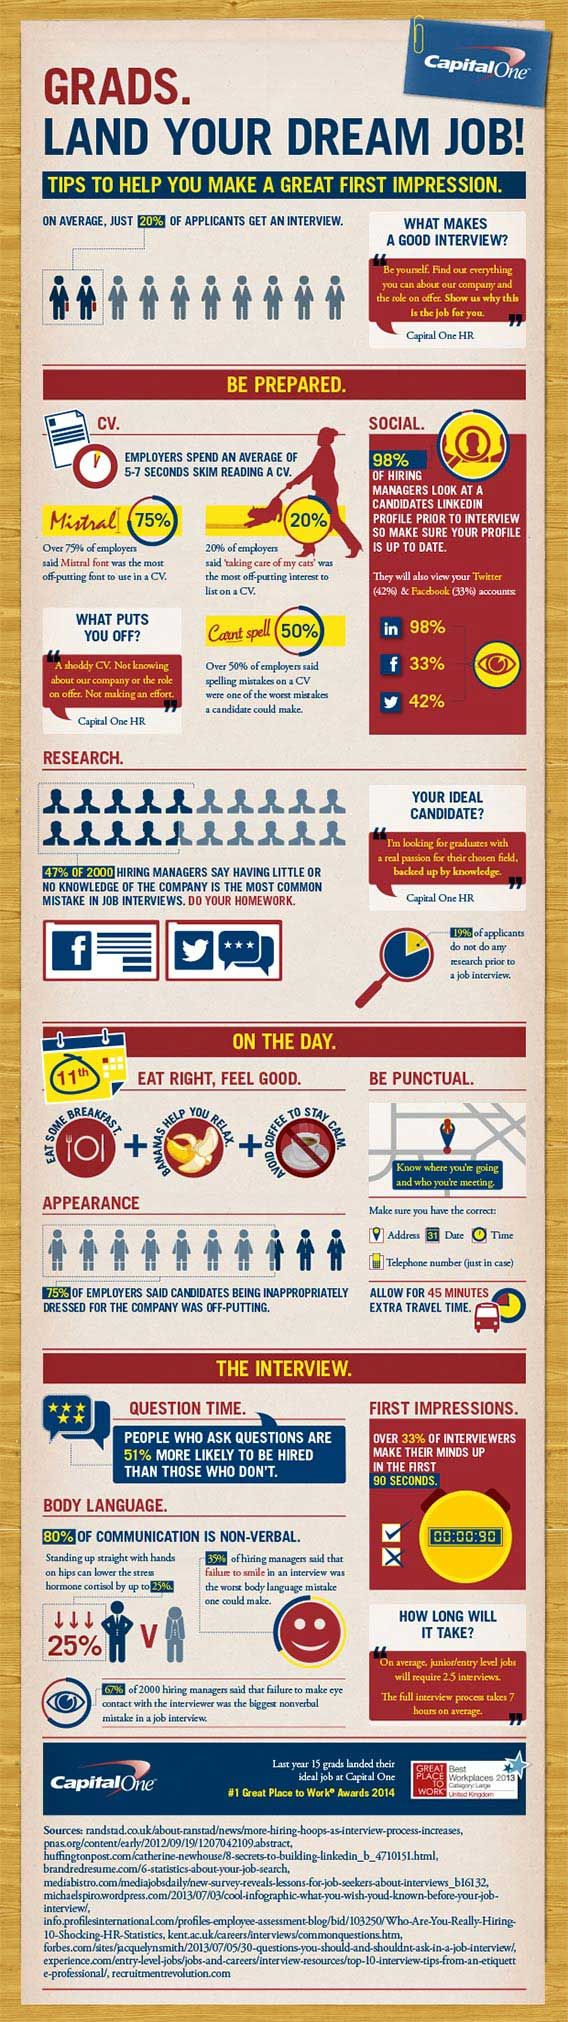 Graduate Recruitment & Job Interview Tips – Infographic by Capital One